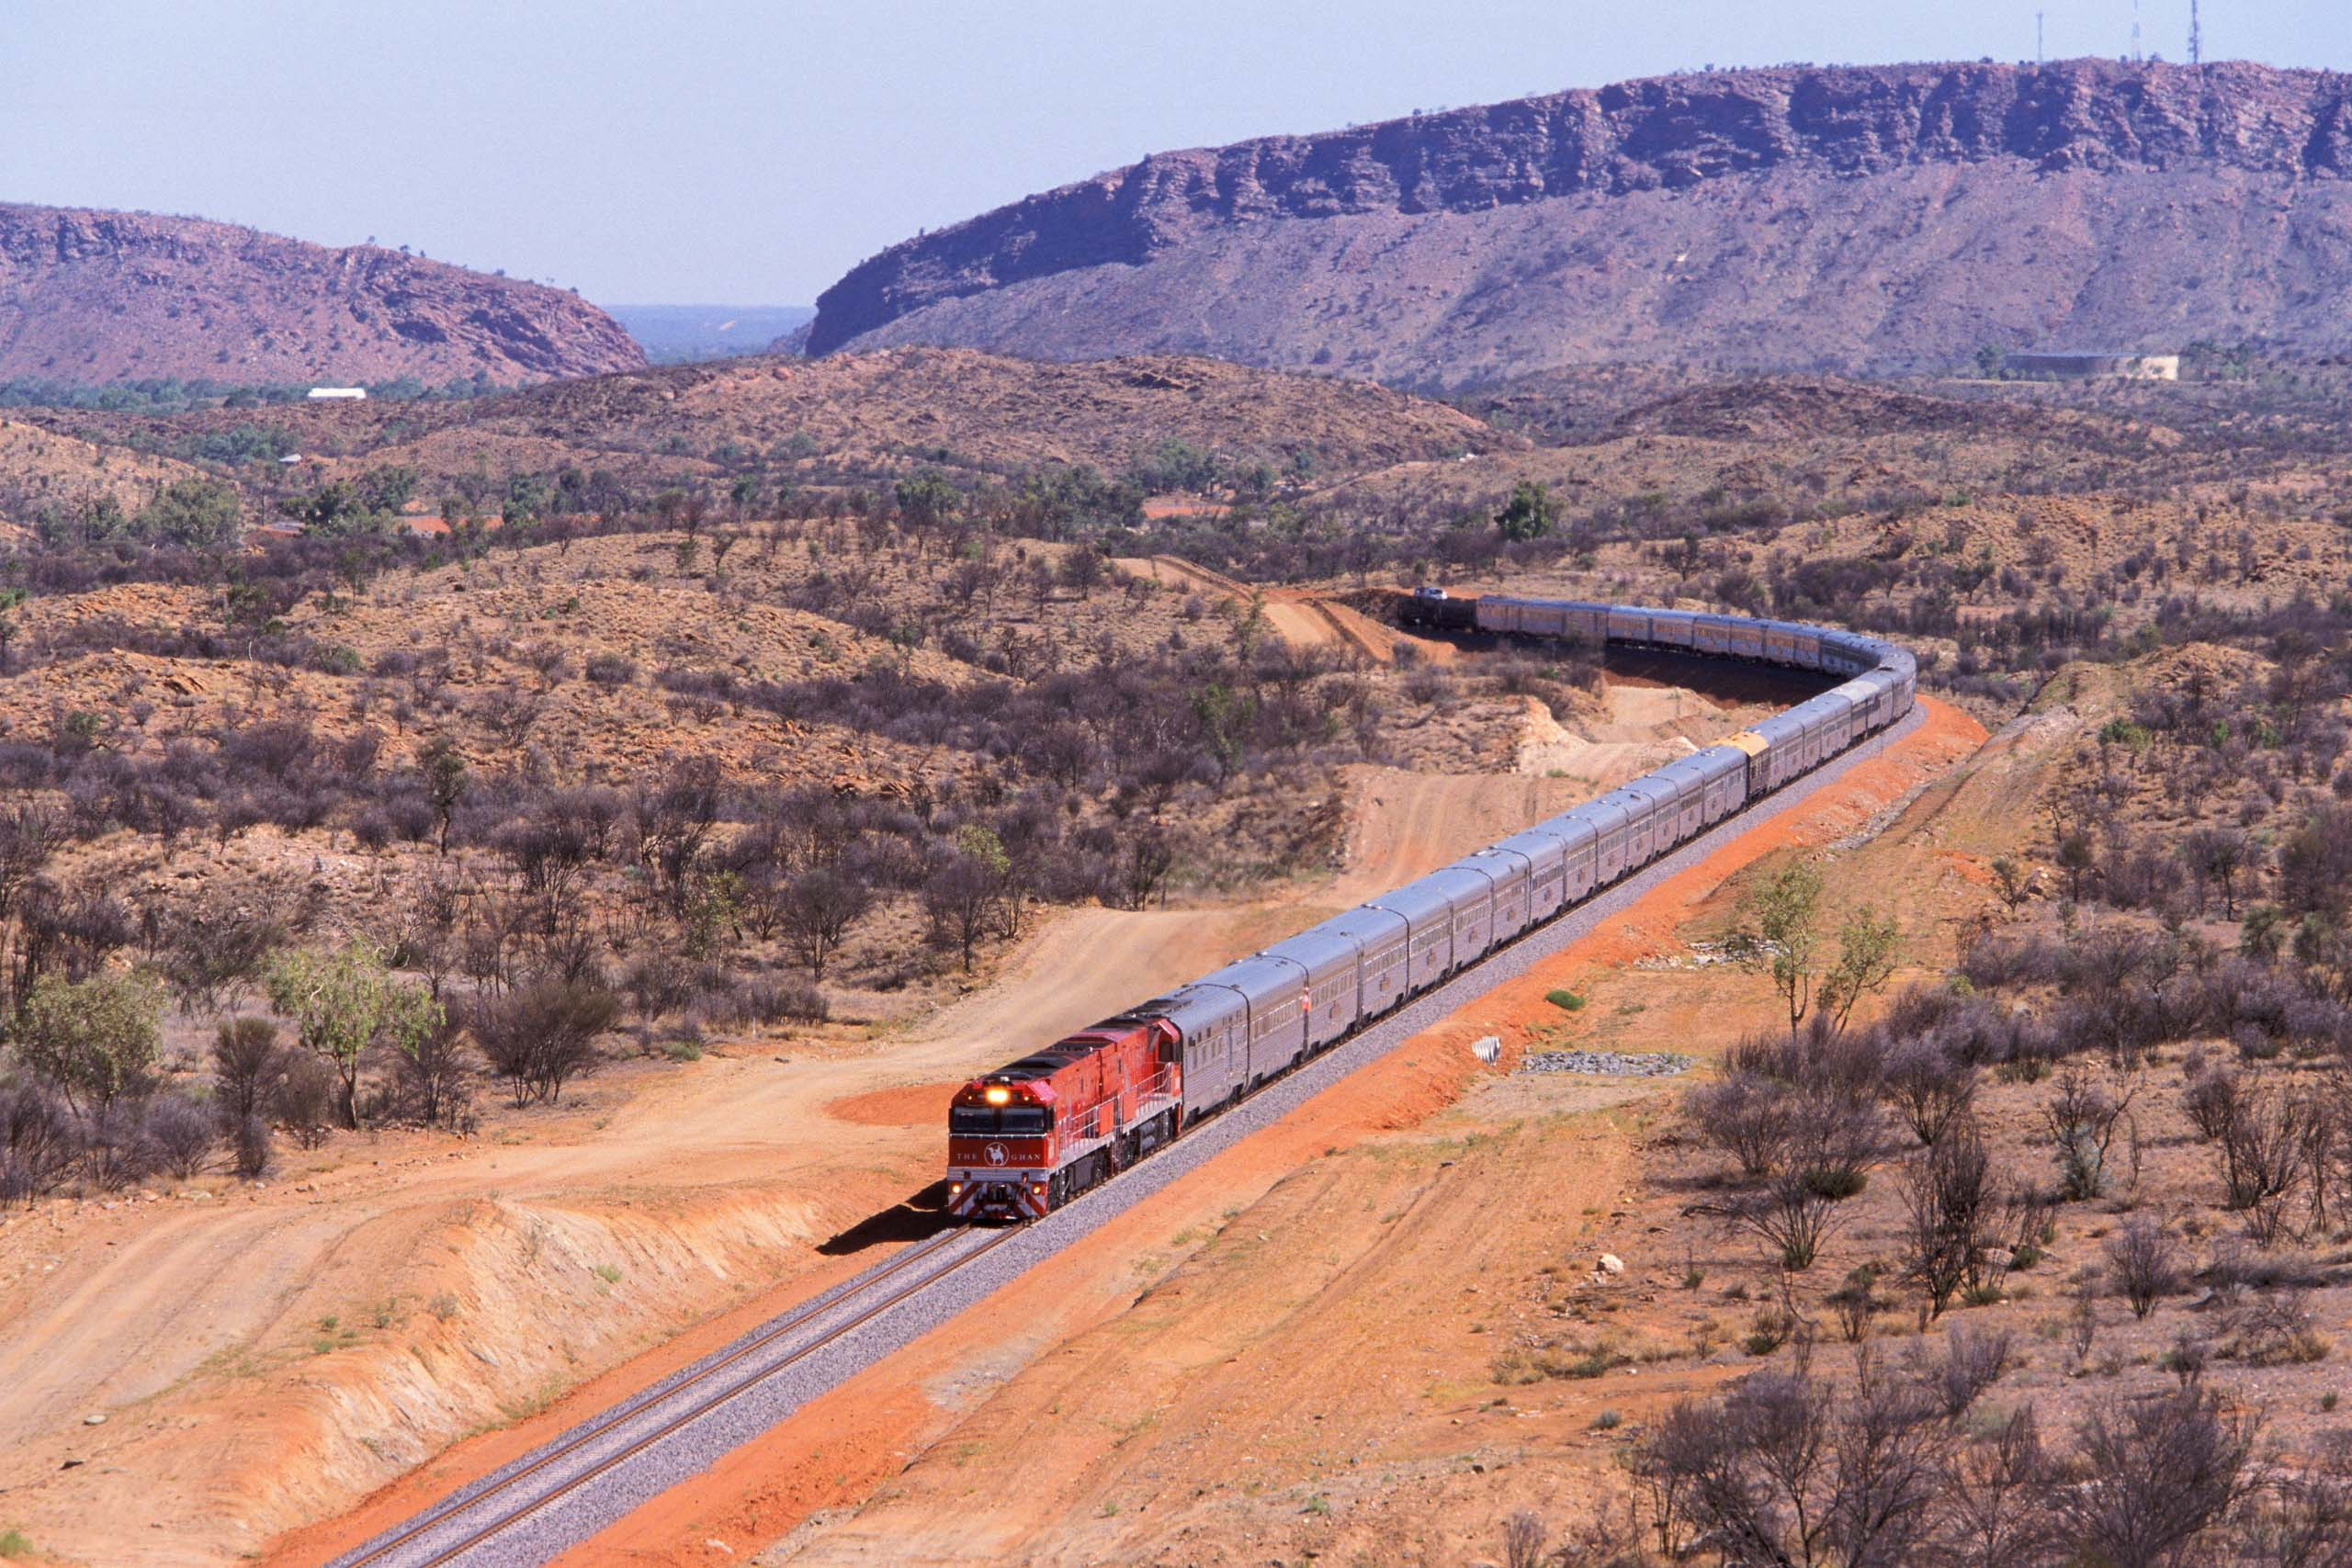 The Ghan near Alice Springs with the MacDonnell Ranges in the background